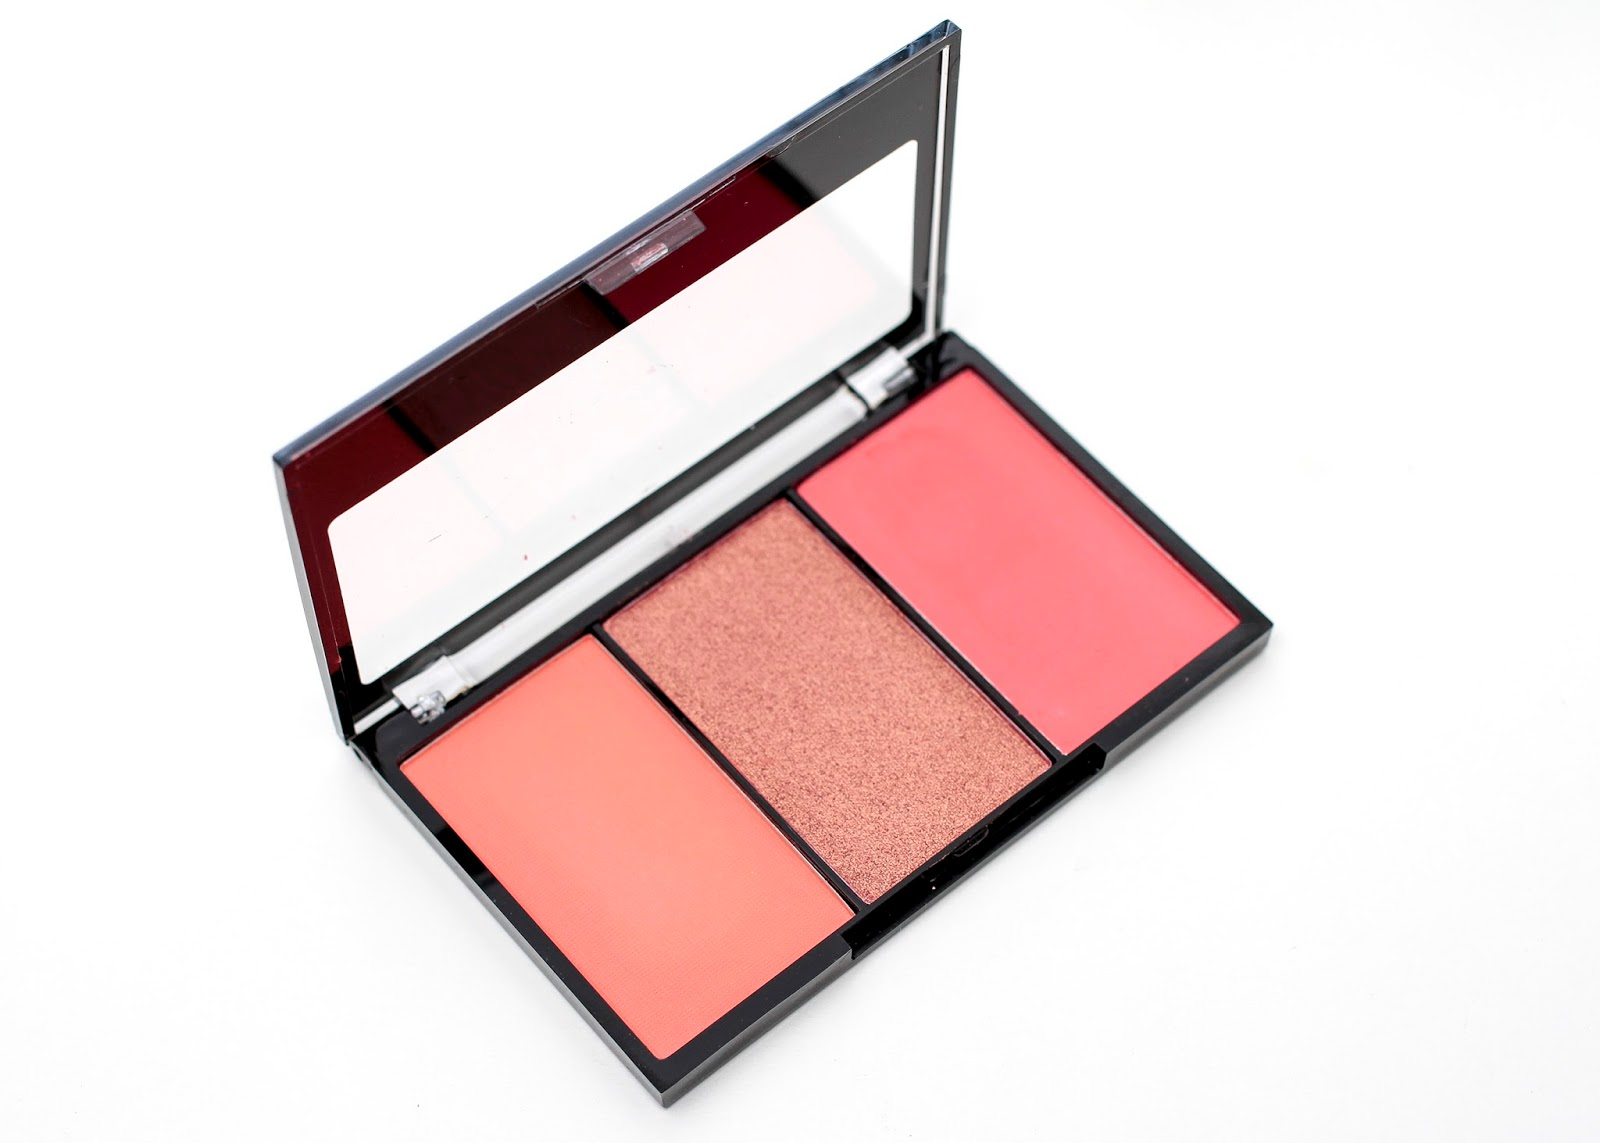 BYS 3 Blush Palette in Coral Me In